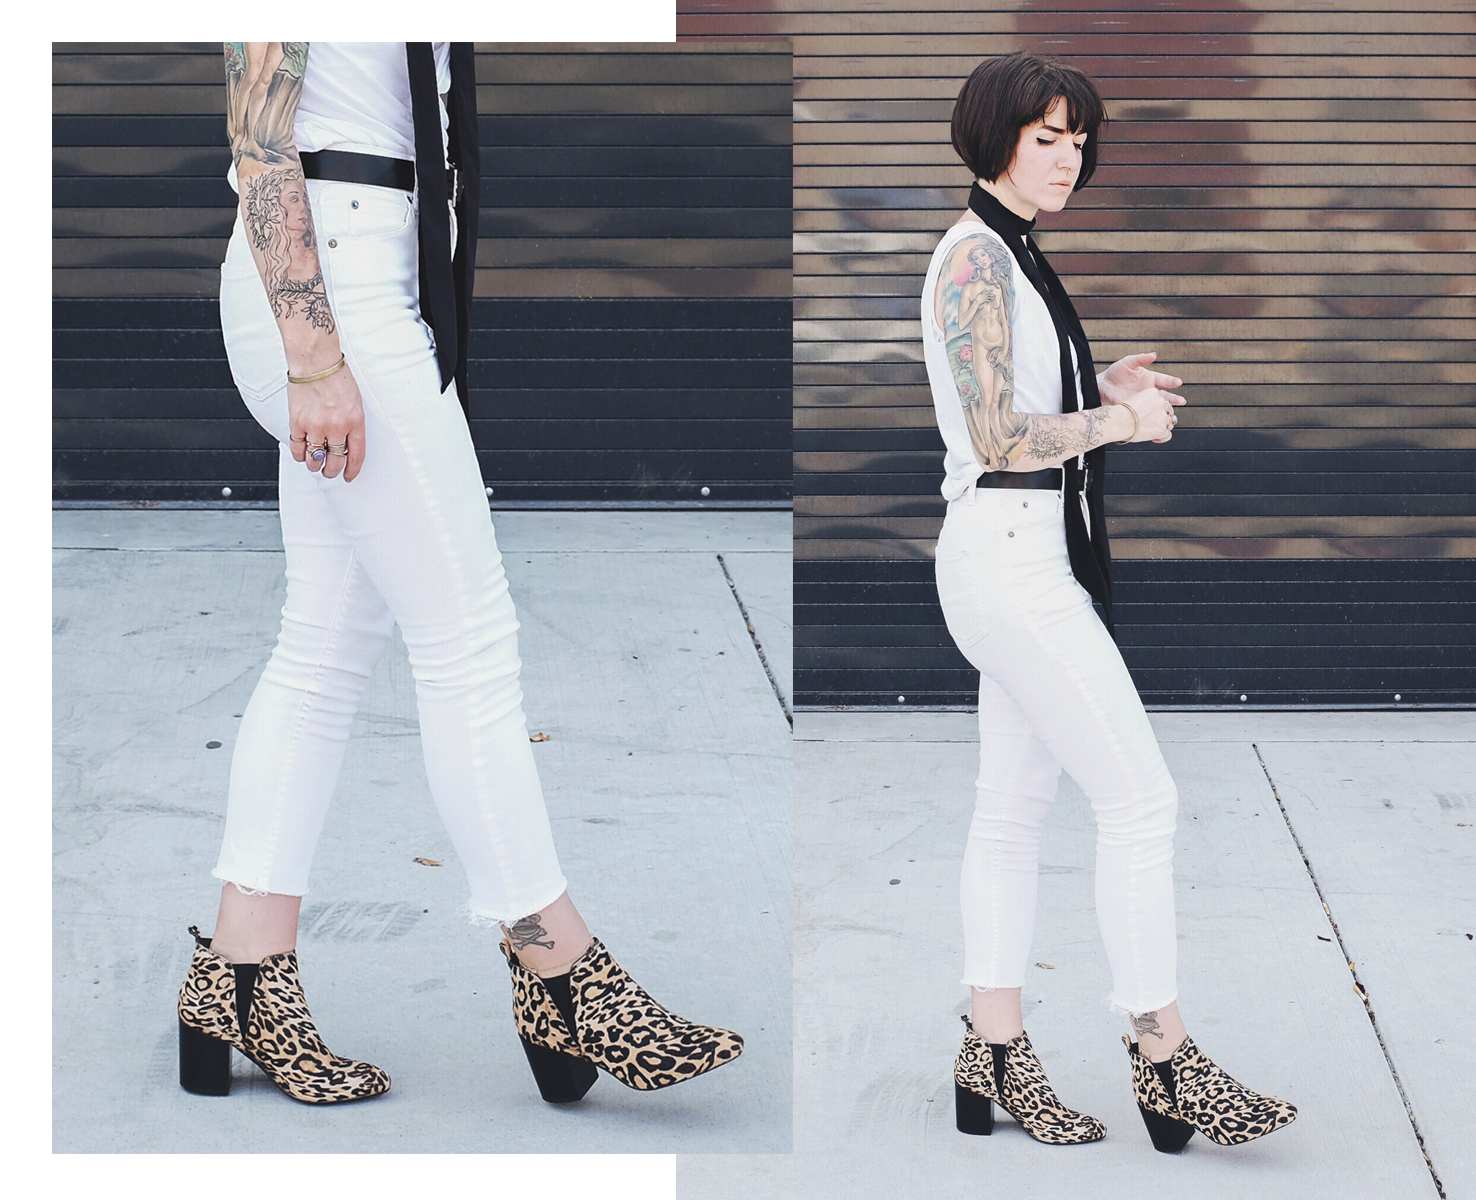 Leopard Print Booties with White Denim - Mini Penny Blog